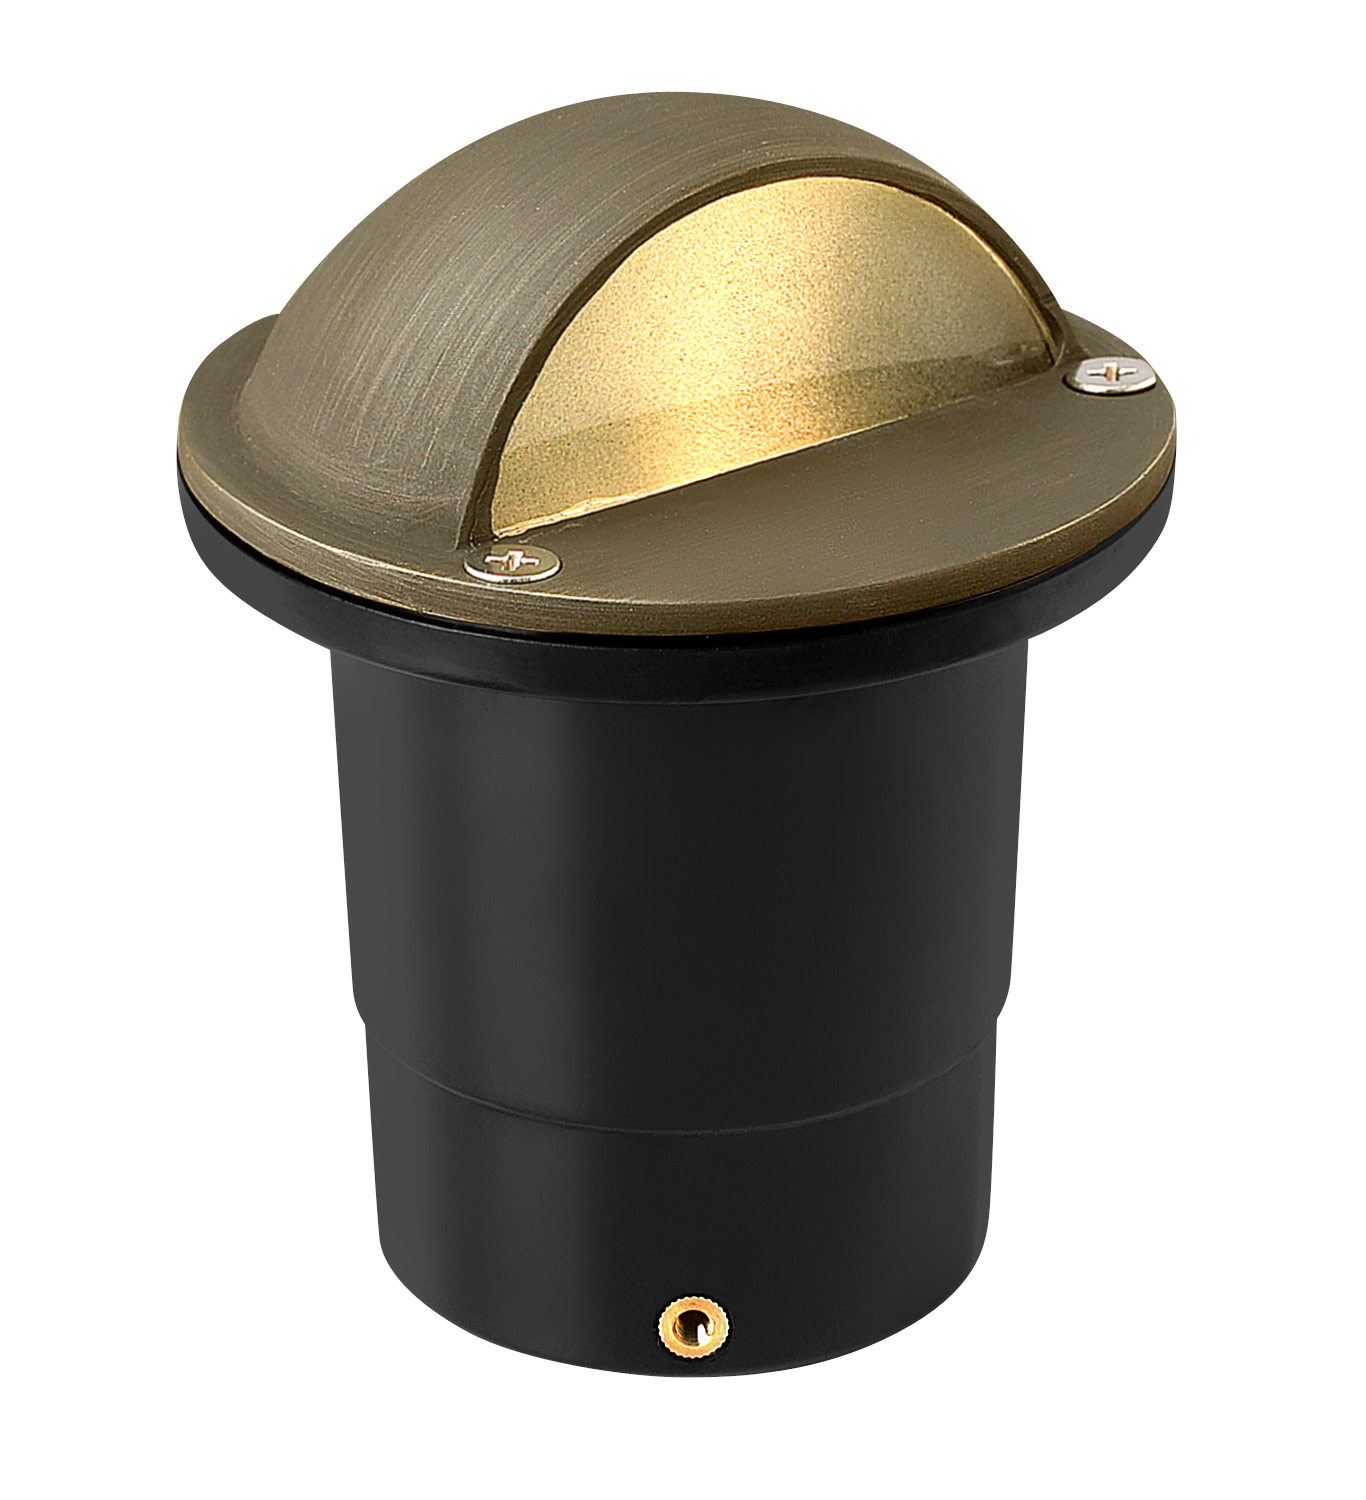 """Hinkley Lighting 16707 12v 20w Solid Brass 4"""" Diameter Landscape Dome Top Well Light from the Hardy Island Collection"""